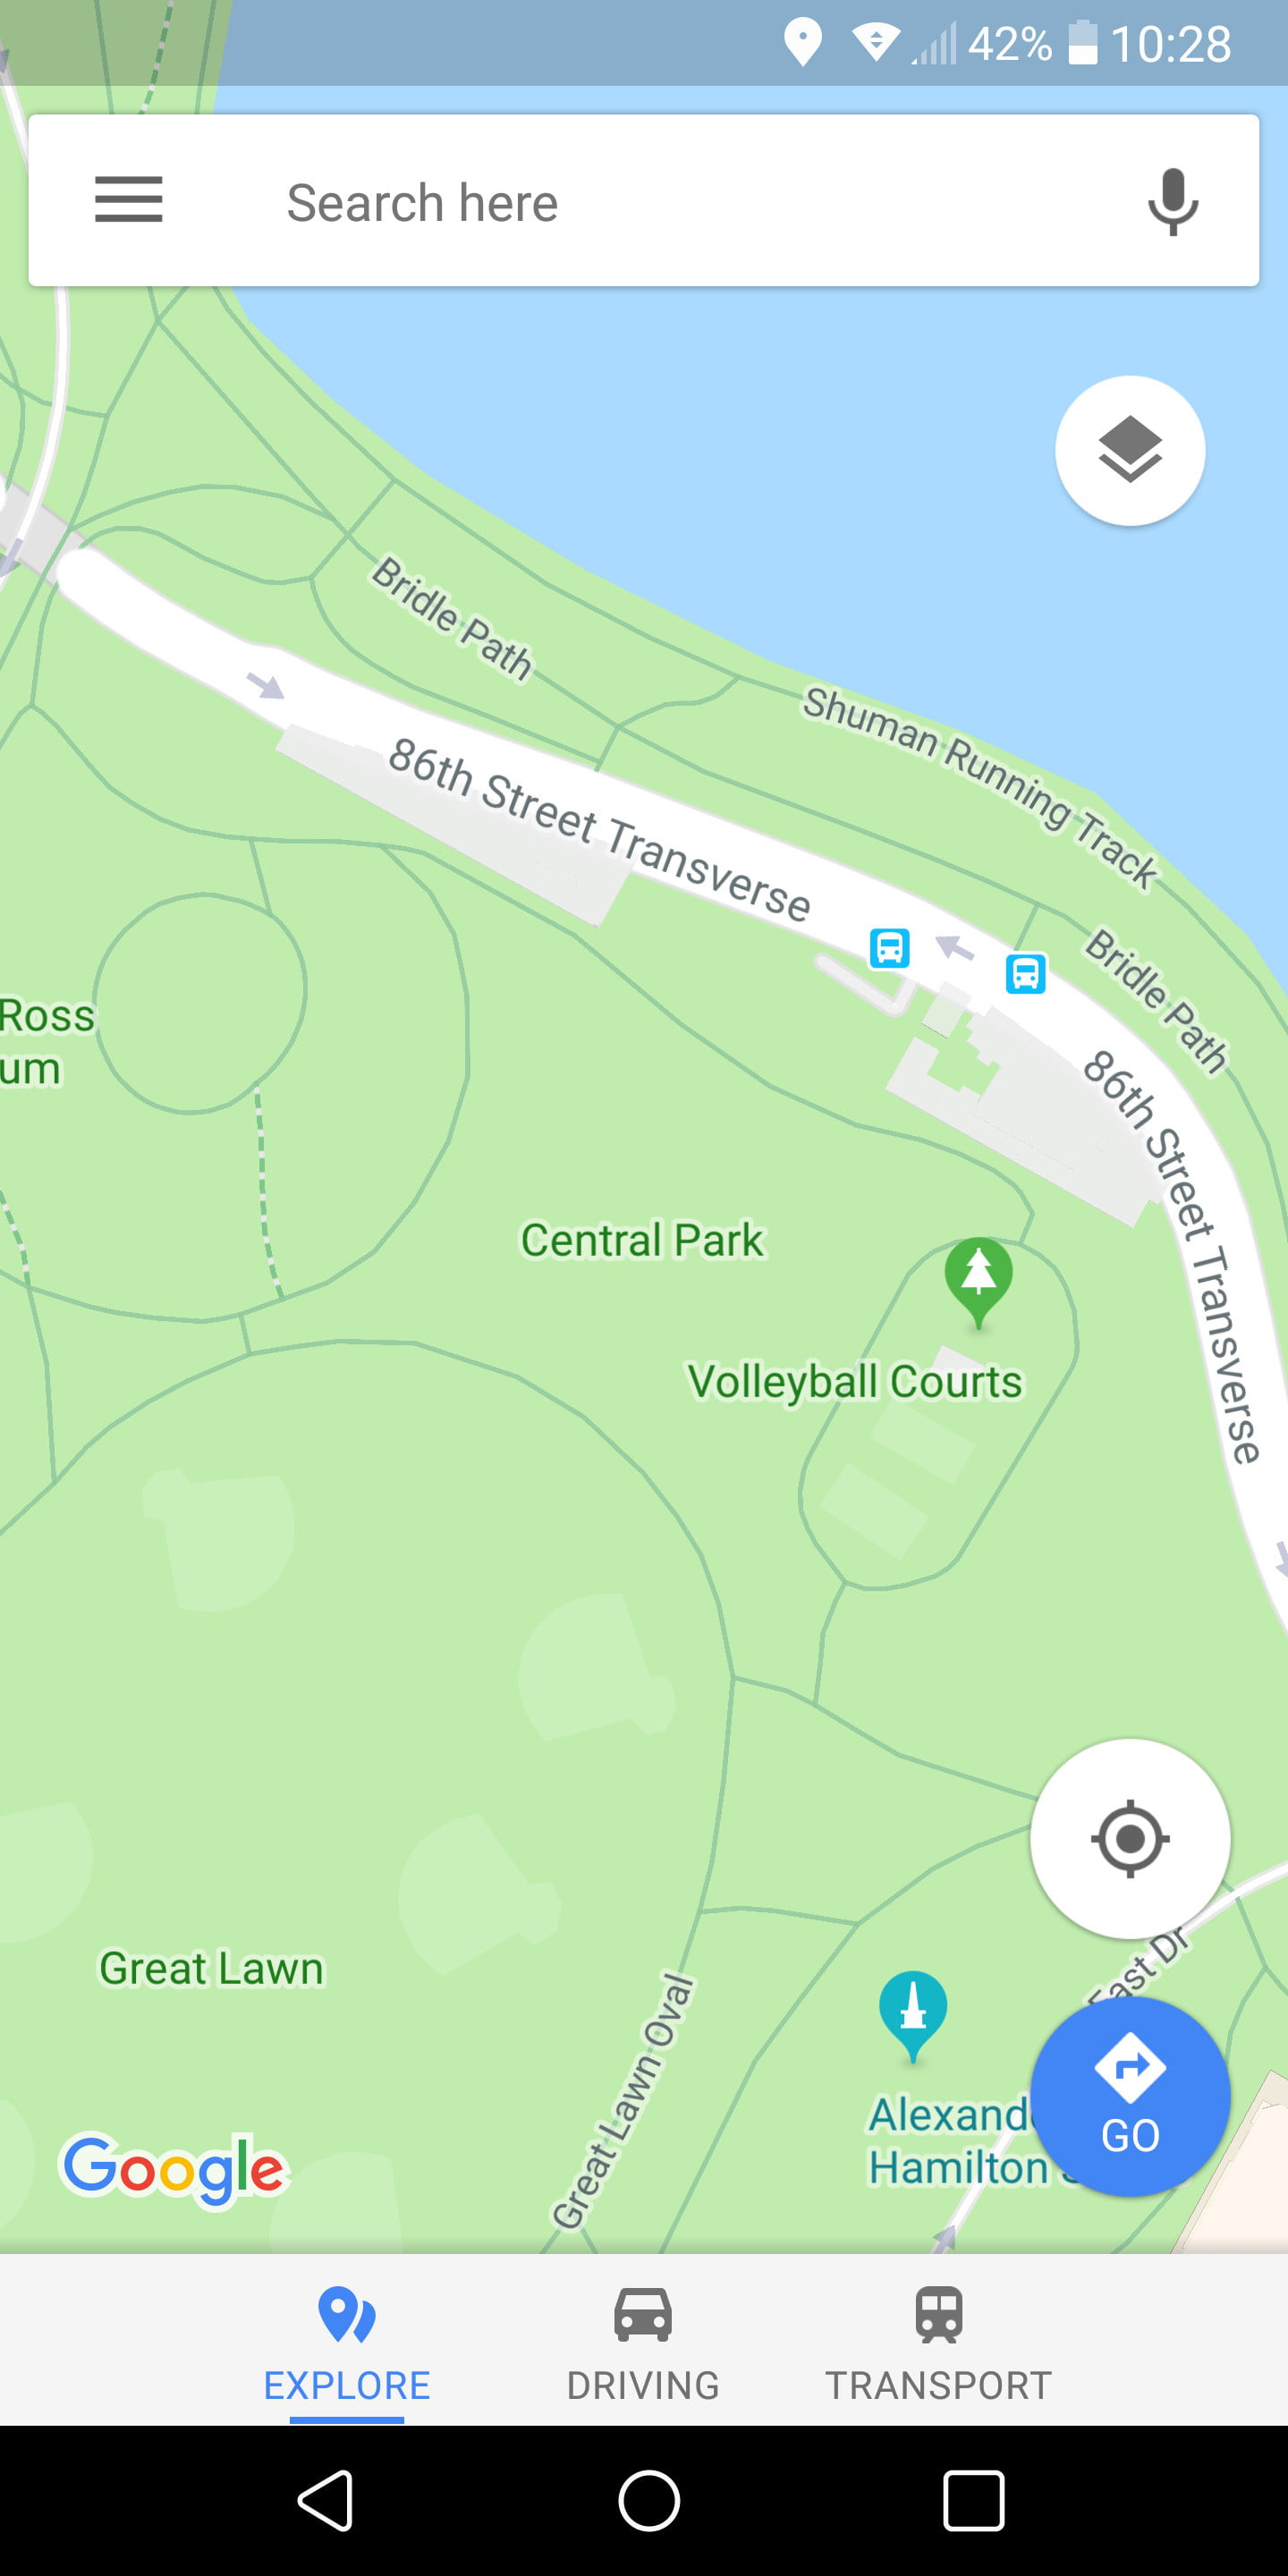 How to Use Google Maps   Page 2   Digital Trends If you zoom in on an area in Google Maps  say New York s Central Park  then  you ll see an option at the bottom of the screen that says Explore